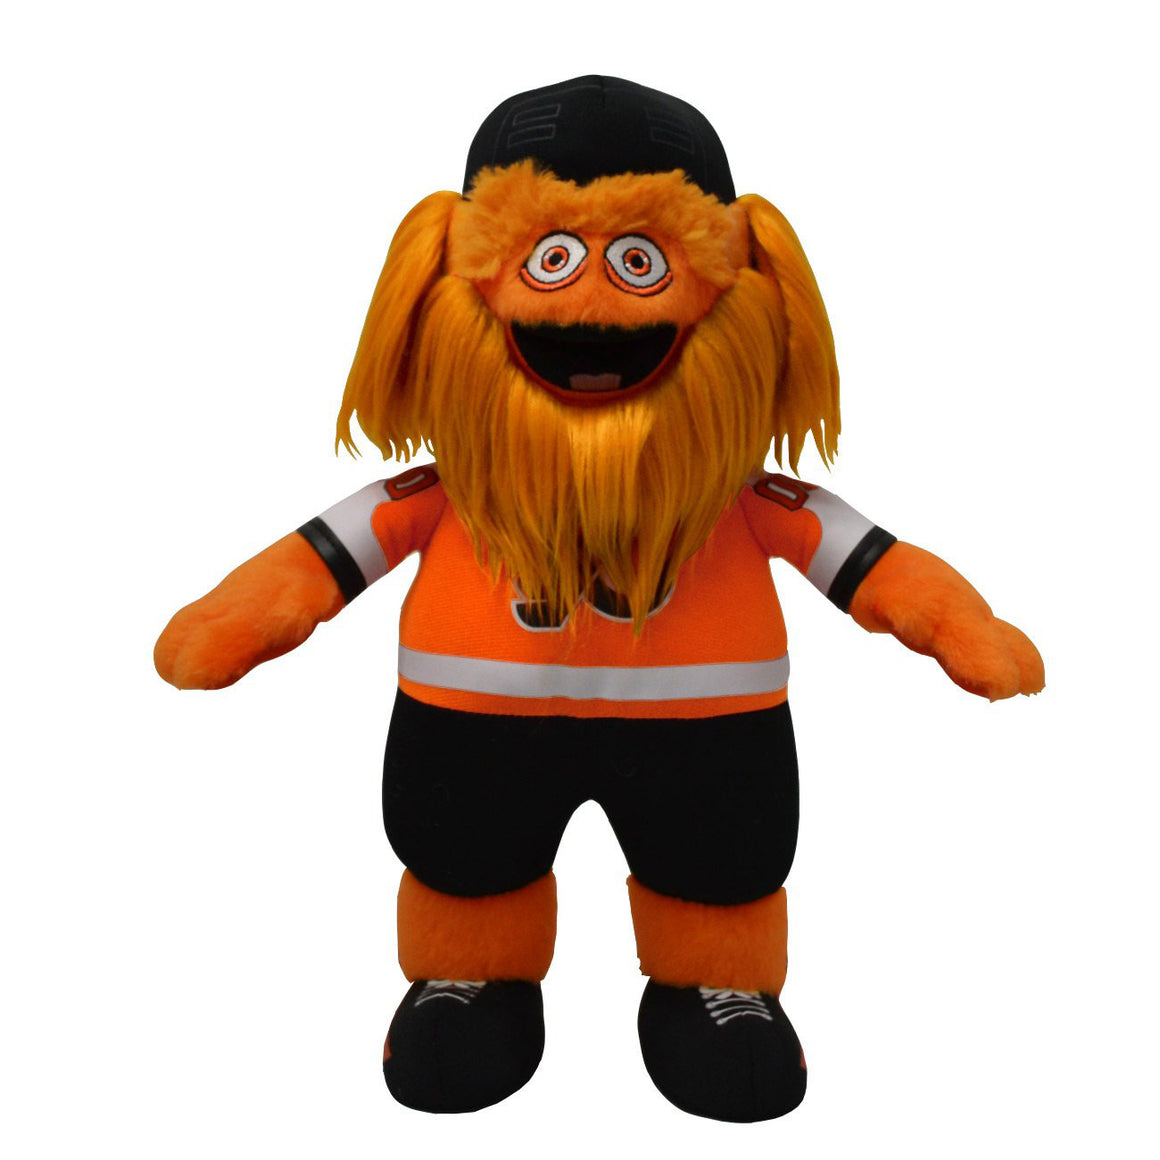 Philadelphia Flyers Plush Gritty Doll